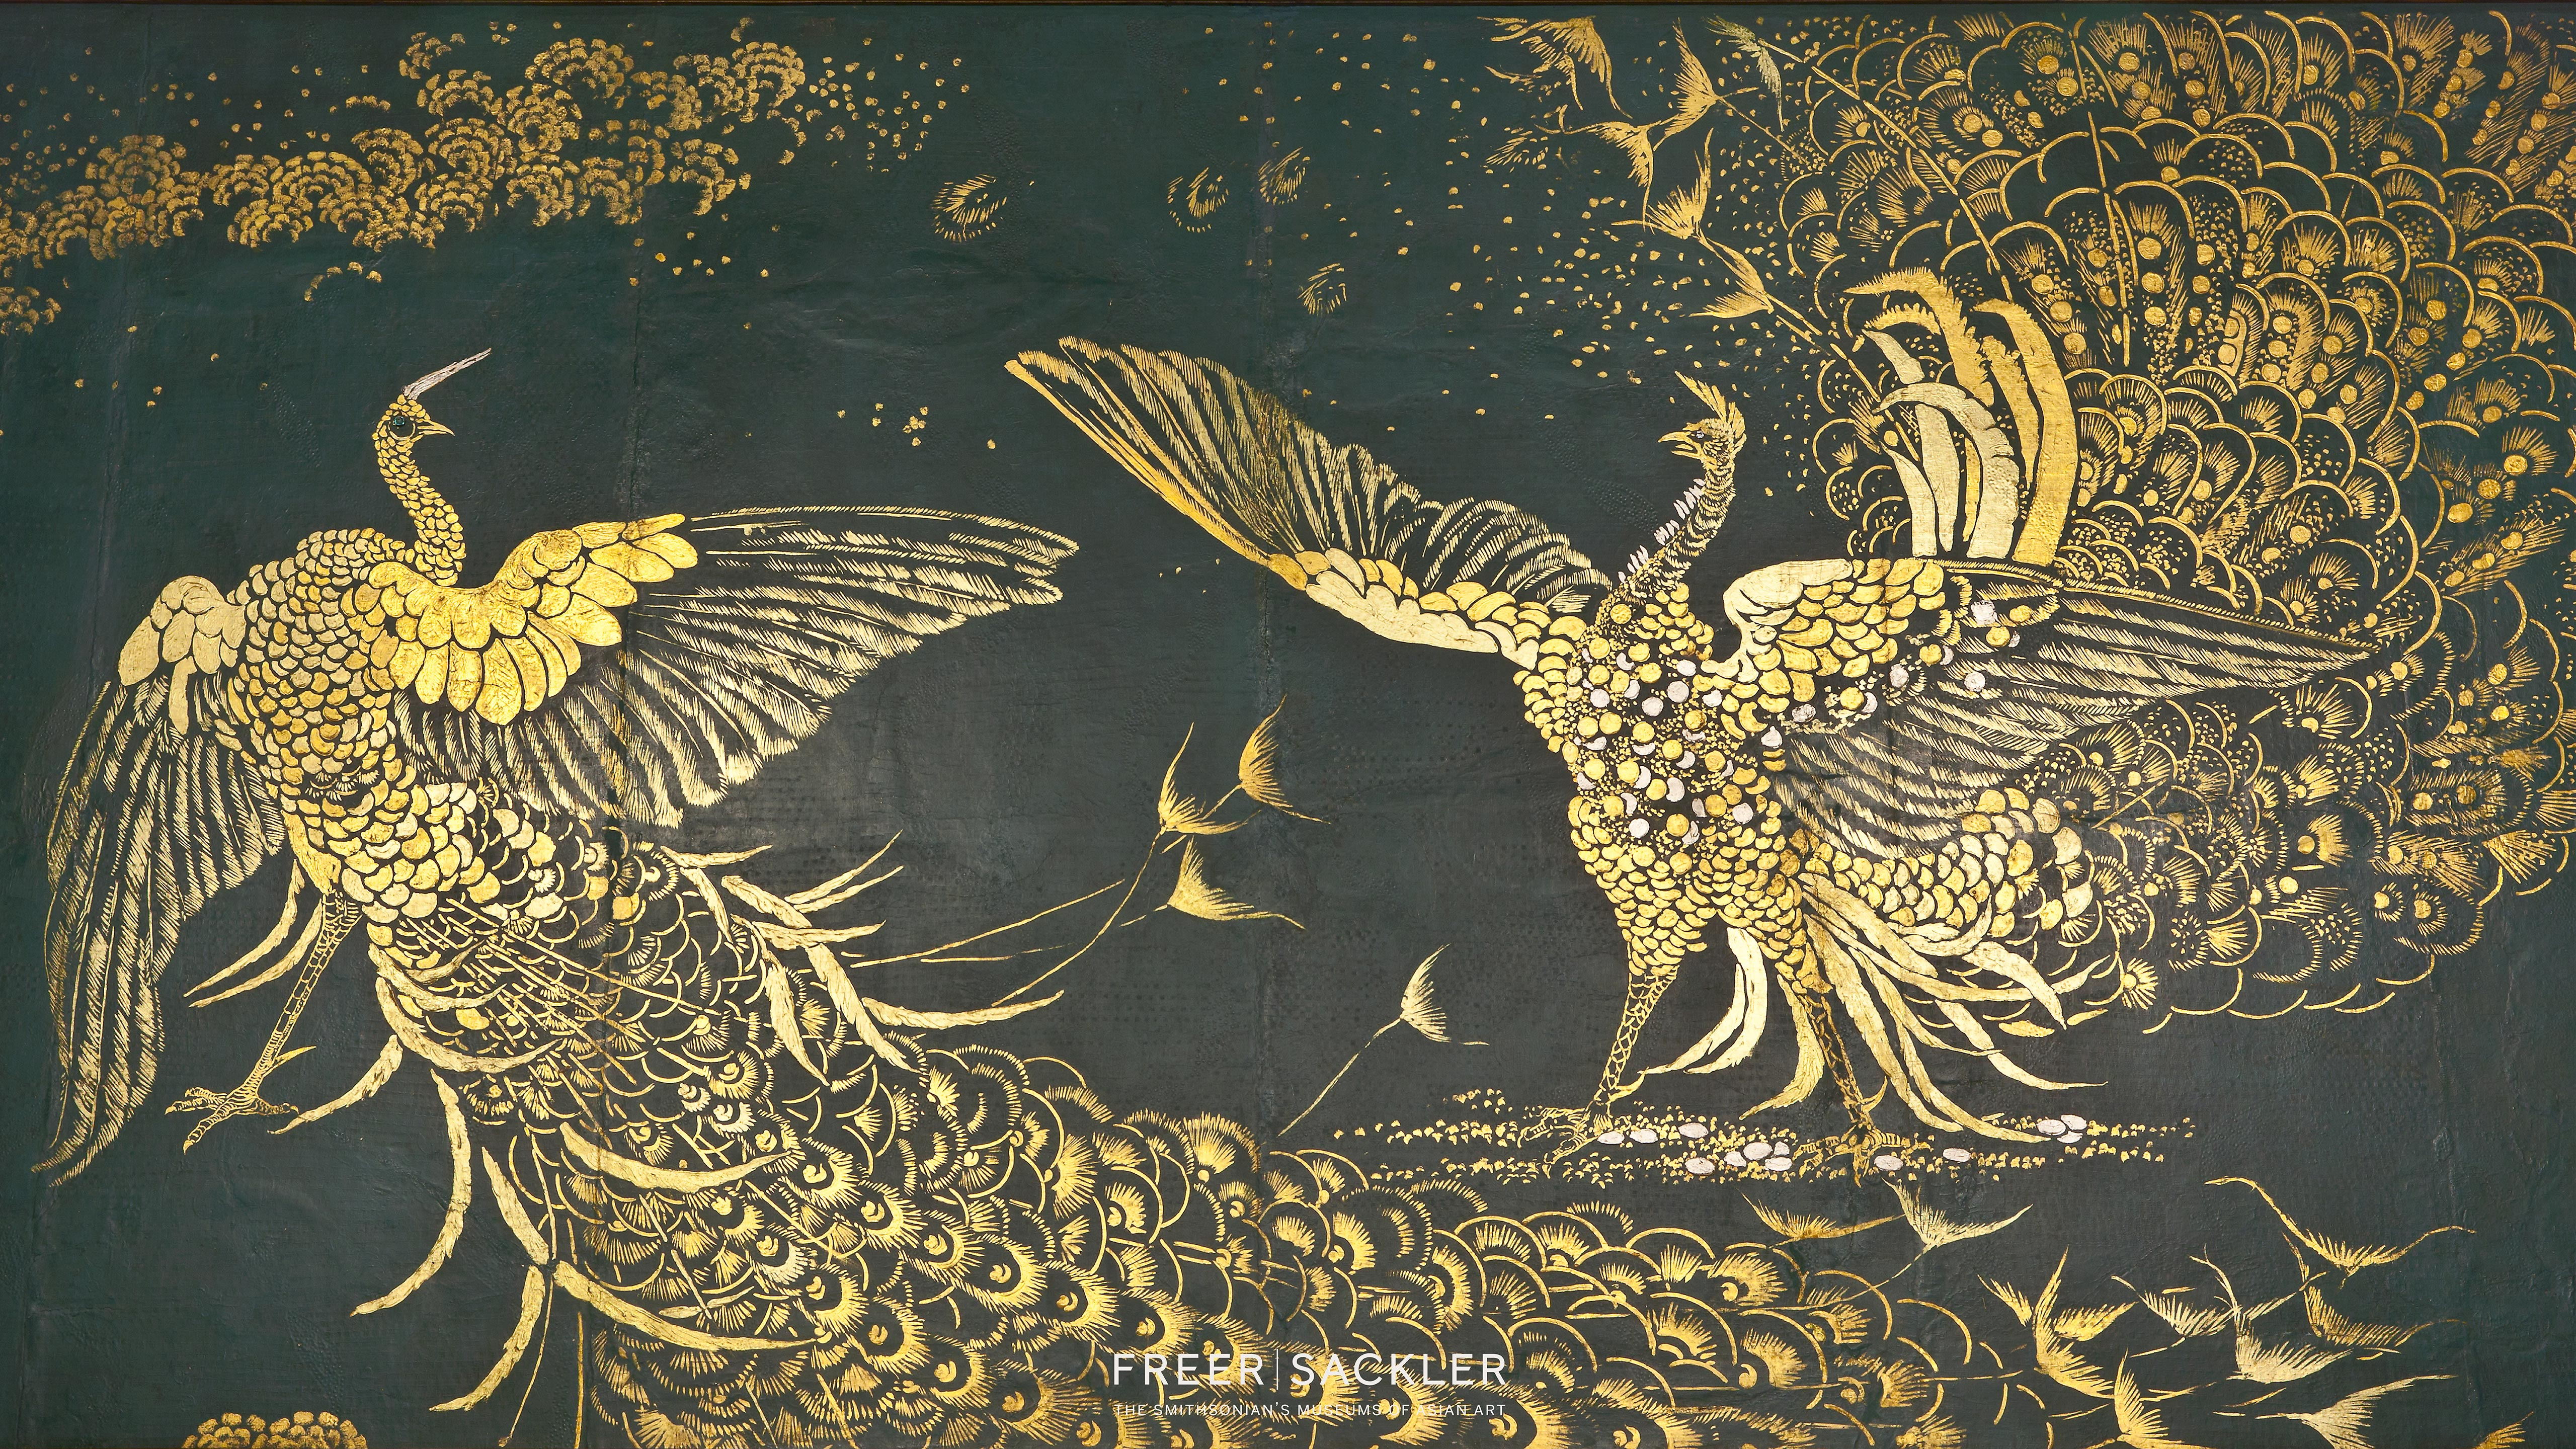 Detail of Whistler's Fighting Peacocks in gold on turquoise